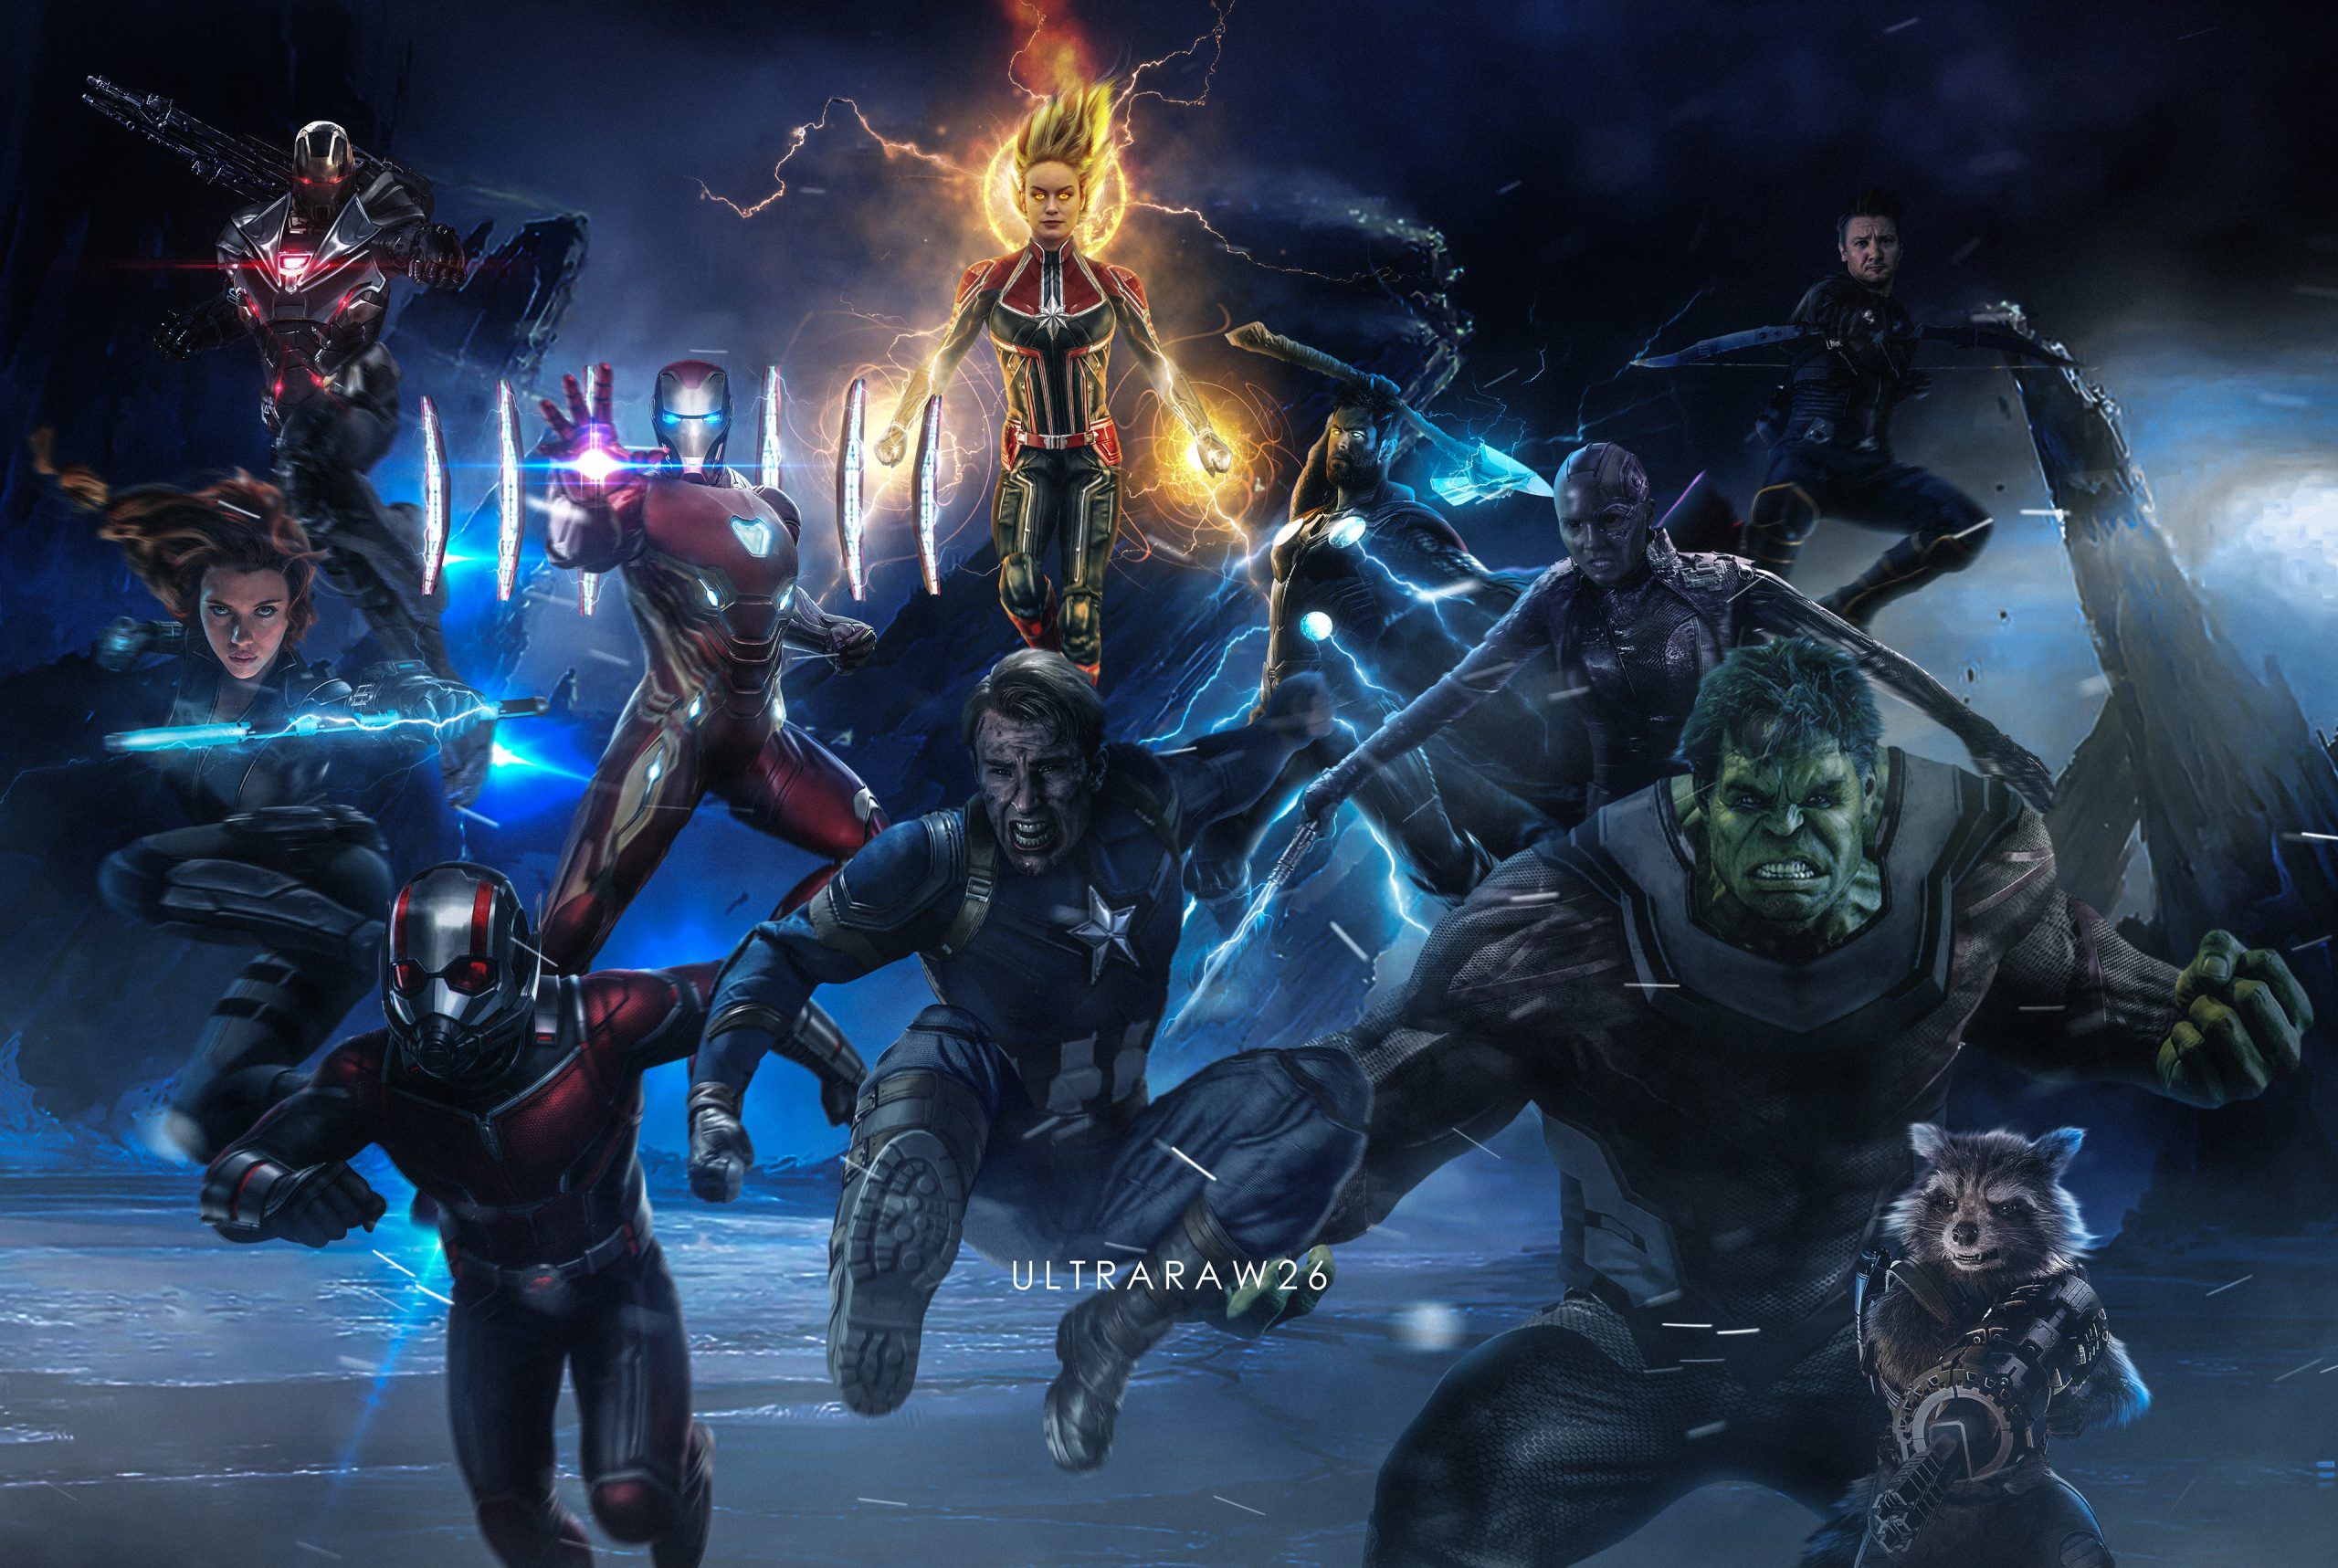 Movies Wallpaper Avengers Wallpaper For Laptop Wallpaper For You The Best Wallpaper For Desktop Mobile